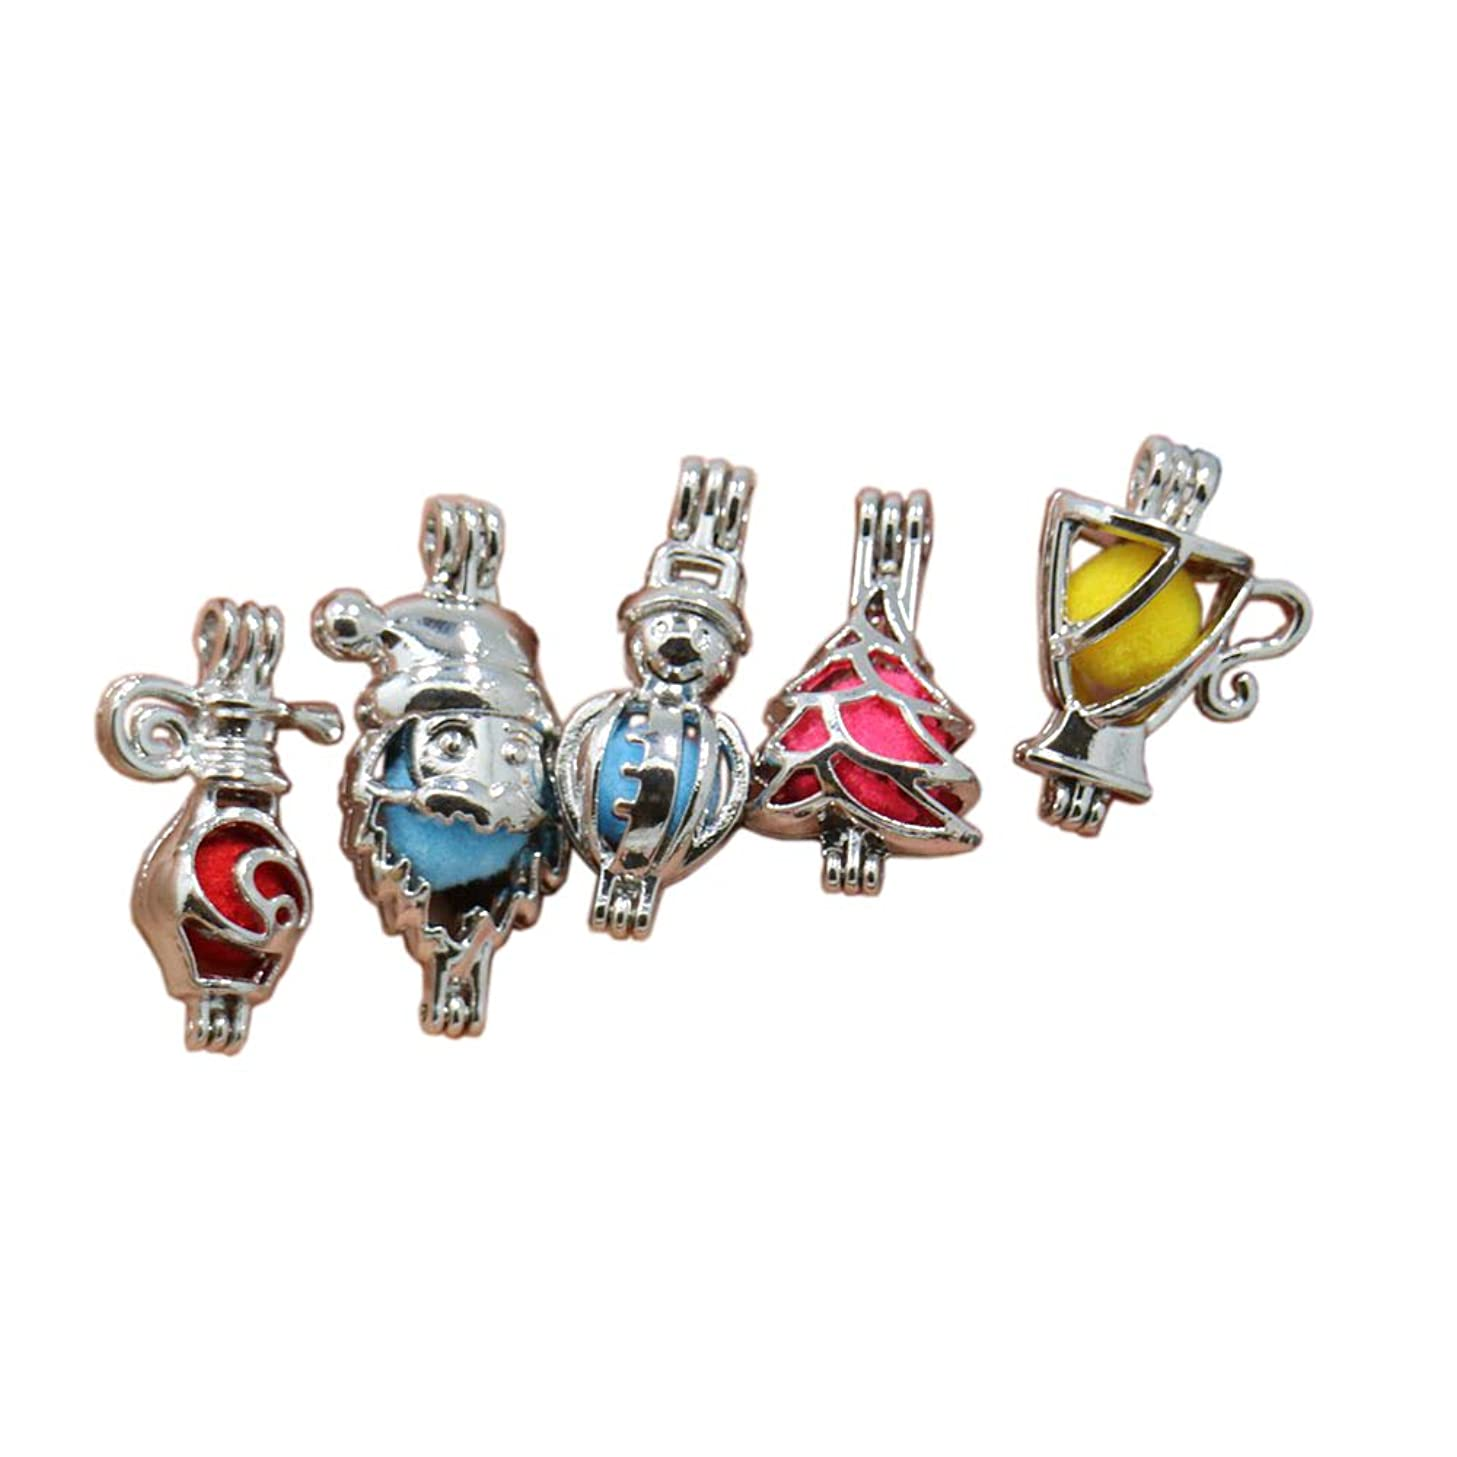 10pcs Mixed Style Stainless Steel Tones Christmas Style Alloy Bead Cage Pendant, Add Your Own Pearls, Stones, Rock to Cage Locket Pendant Charms,Christmas Charms